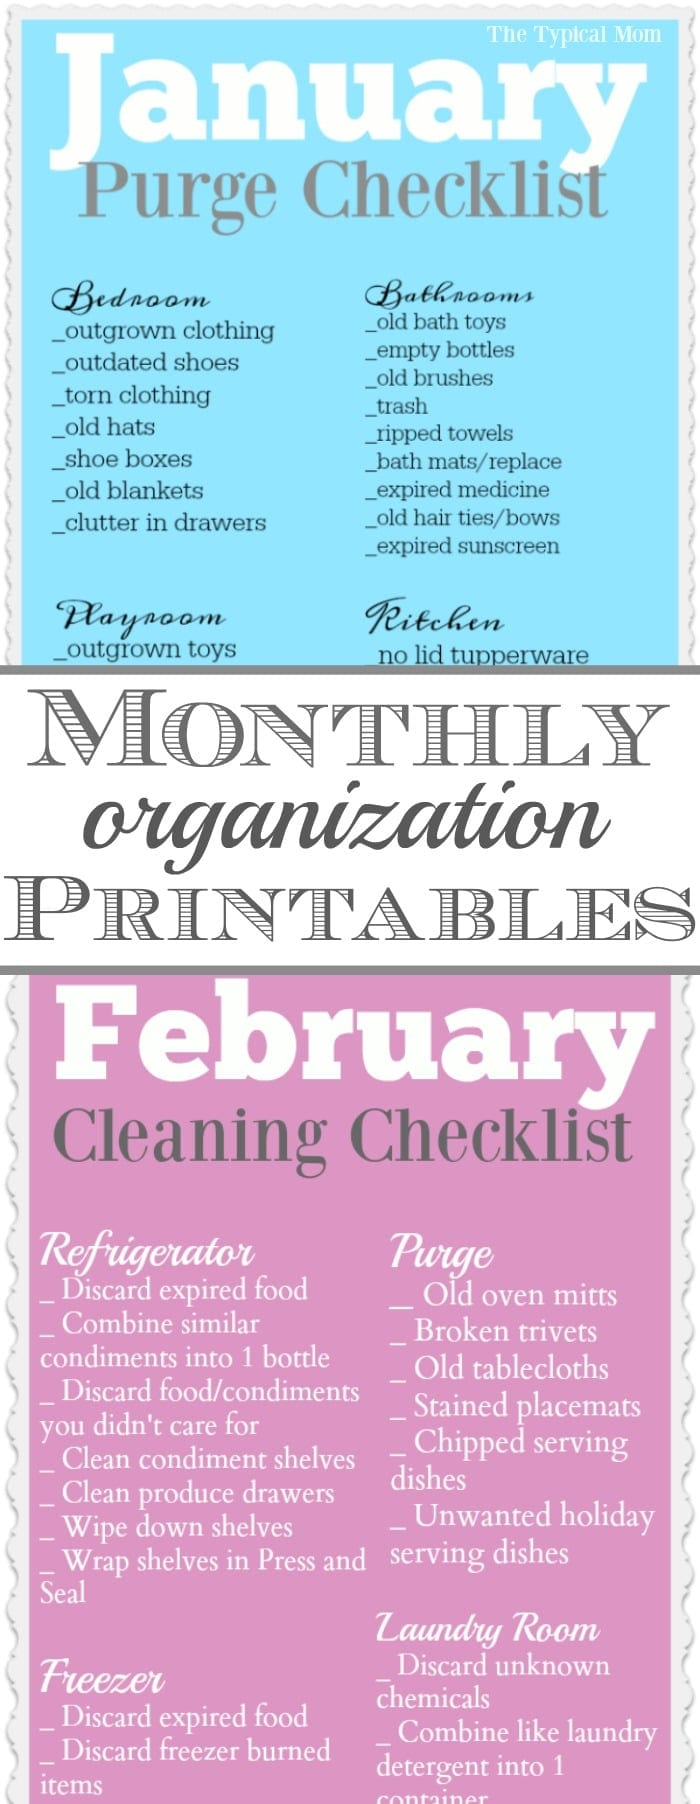 graphic about Free Organization Printables named Business Printables · The Standard Mother